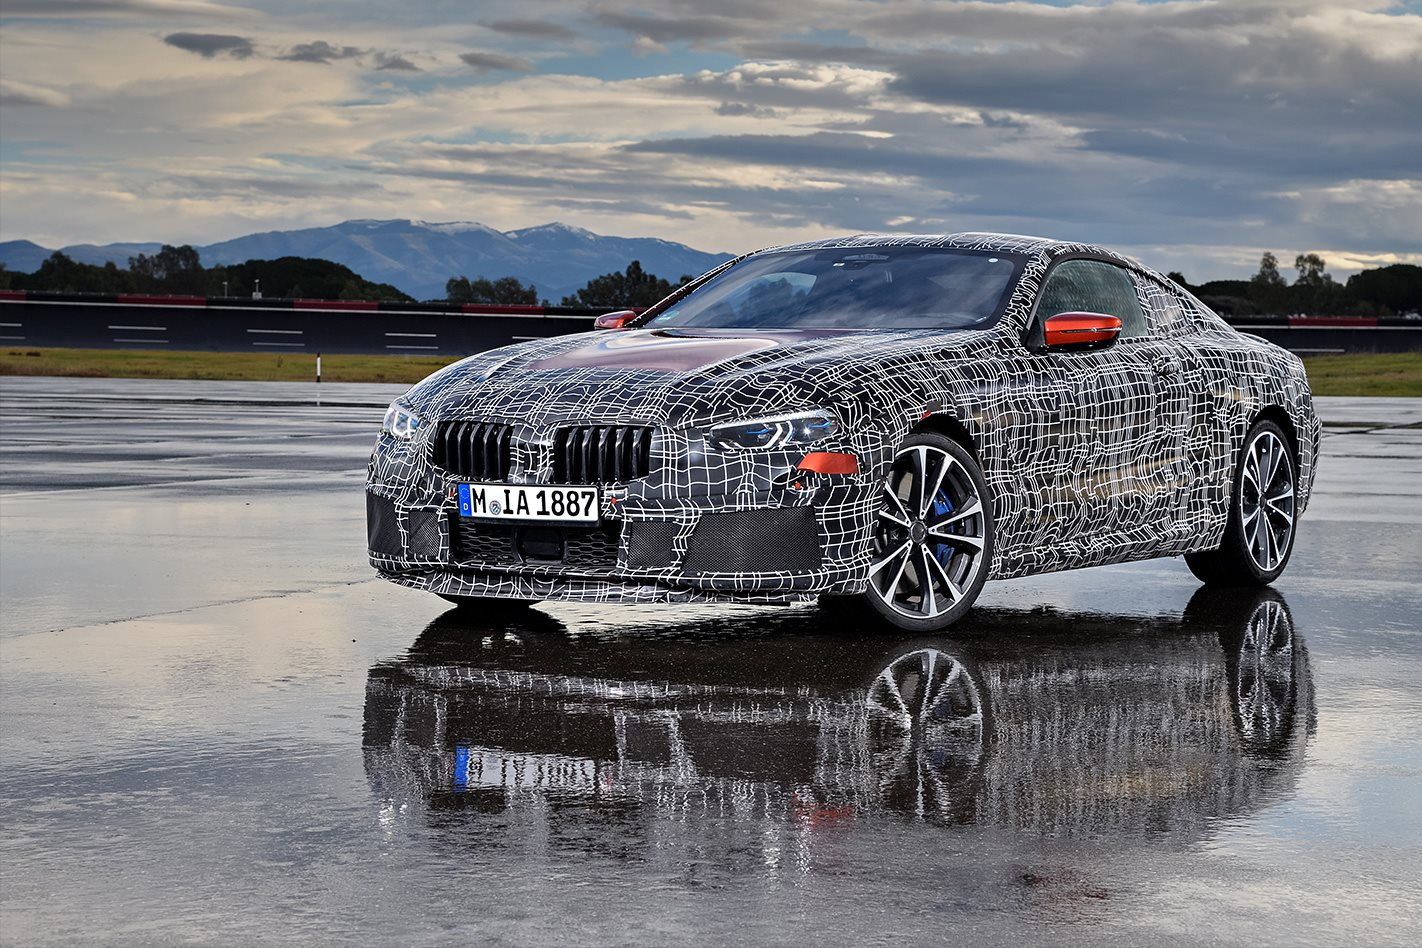 BMW 8 Series undergoes endurance testing phase